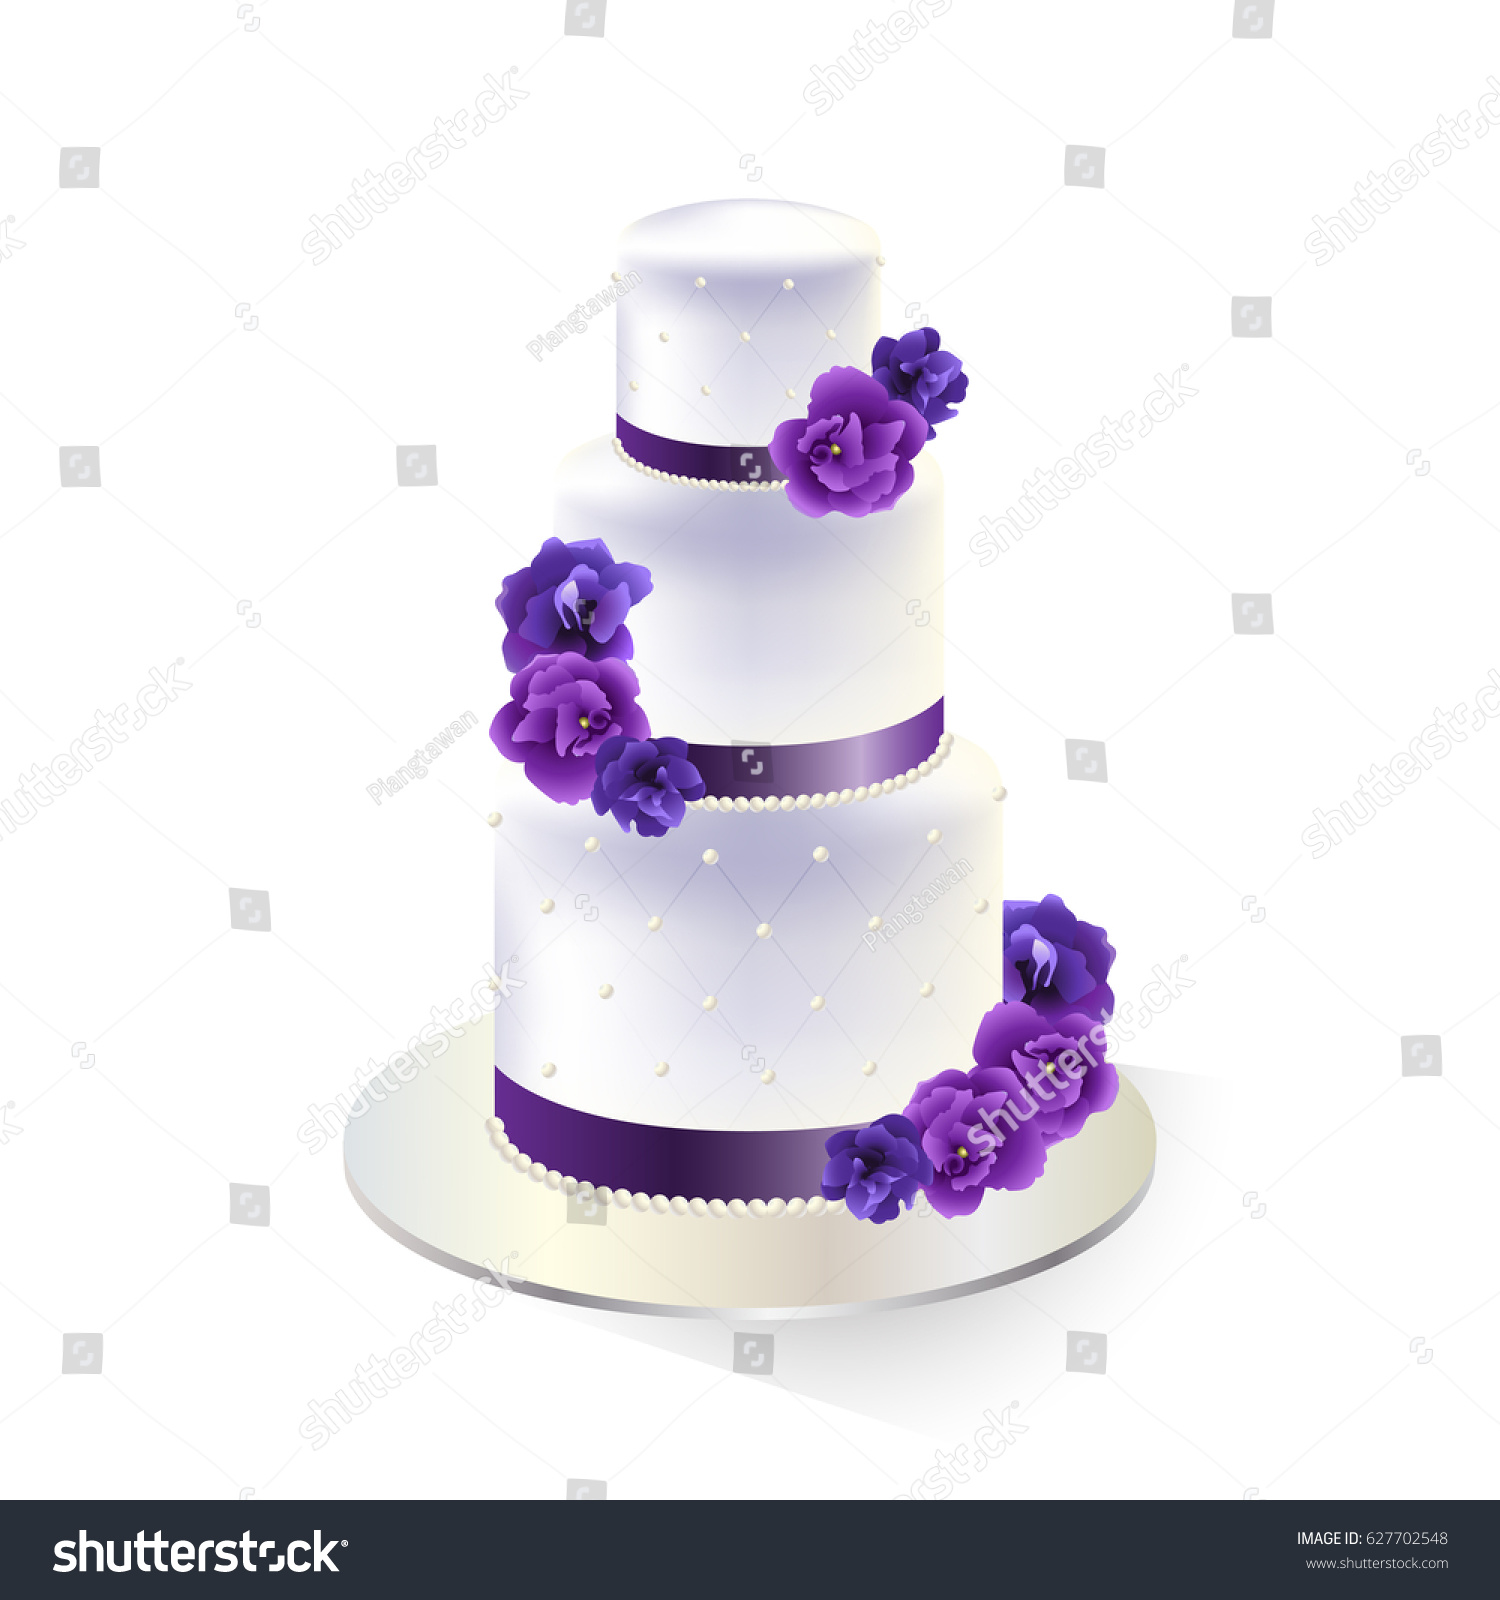 Traditional White Tiered Wedding Cake Decorated Stock Vector ...